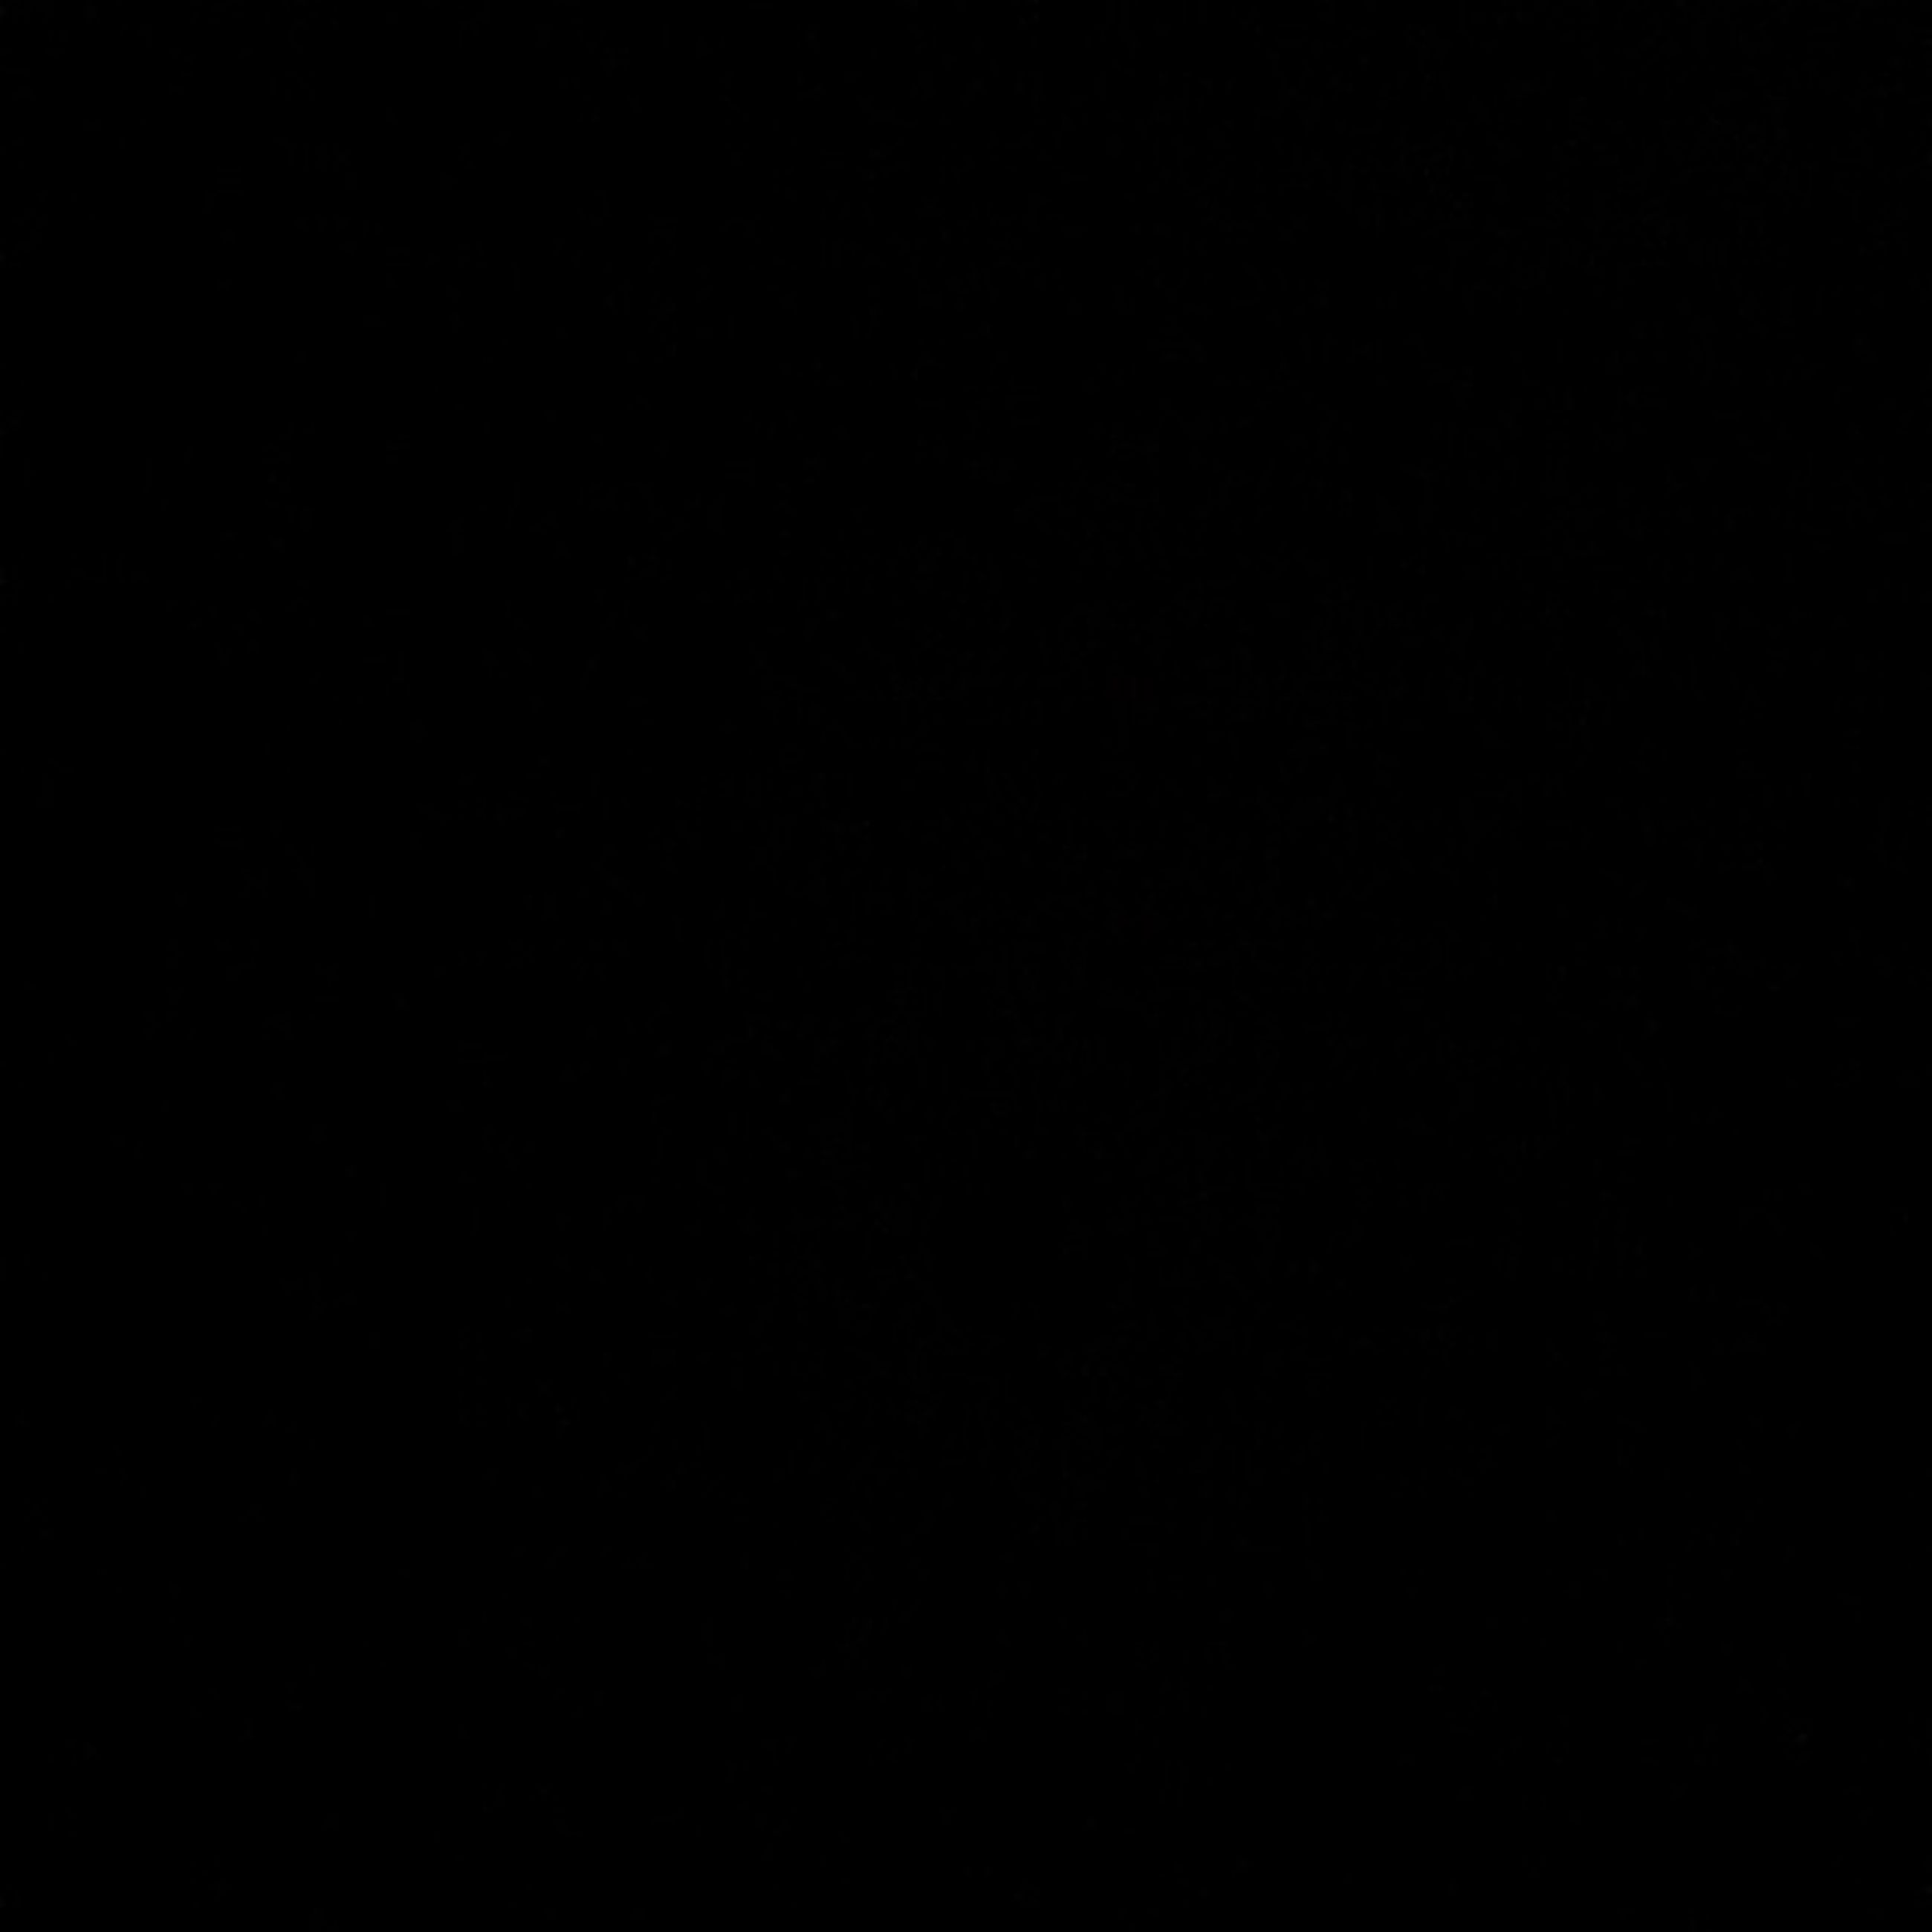 copy space, night, dark, black background, studio shot, tranquility, backgrounds, beauty in nature, nature, no people, tranquil scene, clear sky, silhouette, scenics, outdoors, low angle view, full frame, idyllic, black color, light - natural phenomenon